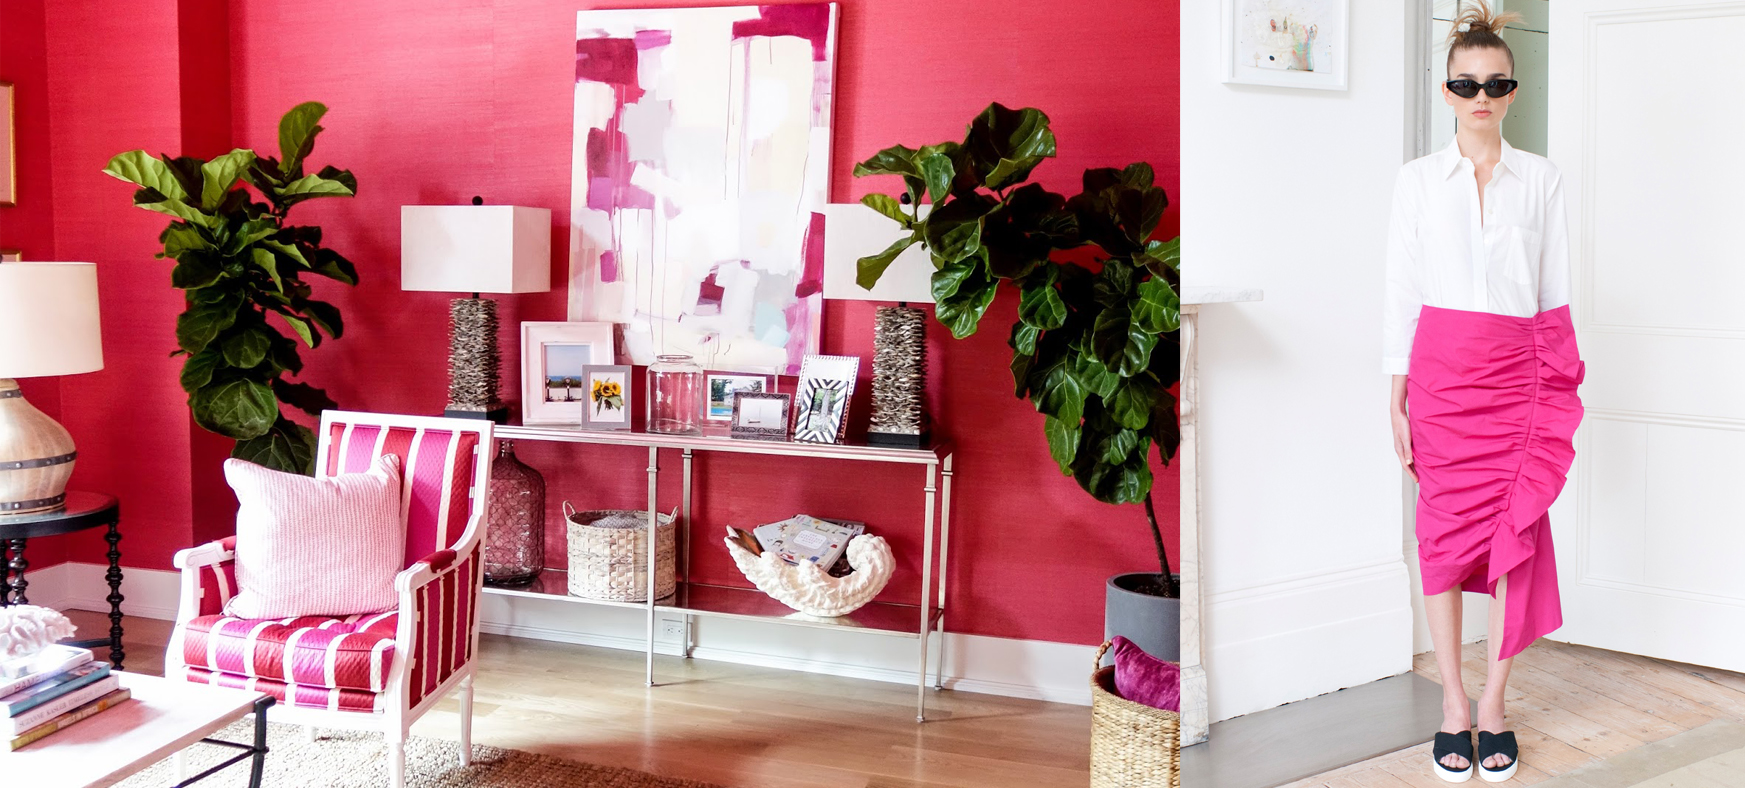 Spring 2016 interior design and home decor trends inspired by runway